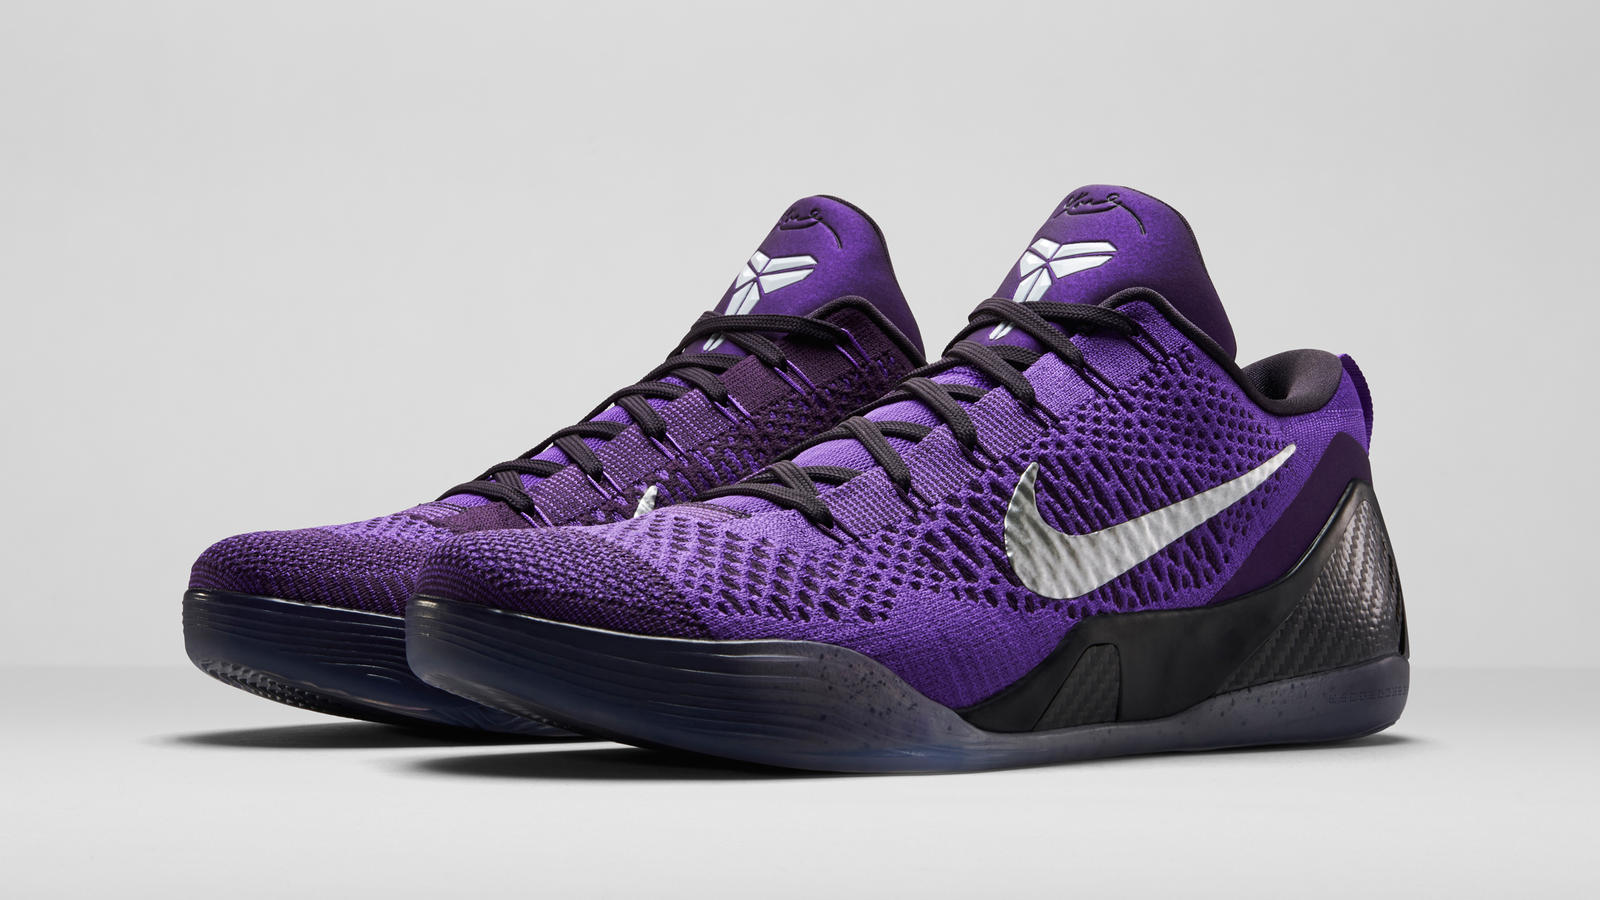 c75925125700 fa14 nike kobe9elitelow purple 639045 515 3qtr pair fb.  fa14 nike kobe9elitelow purple 639045 515 profile fb